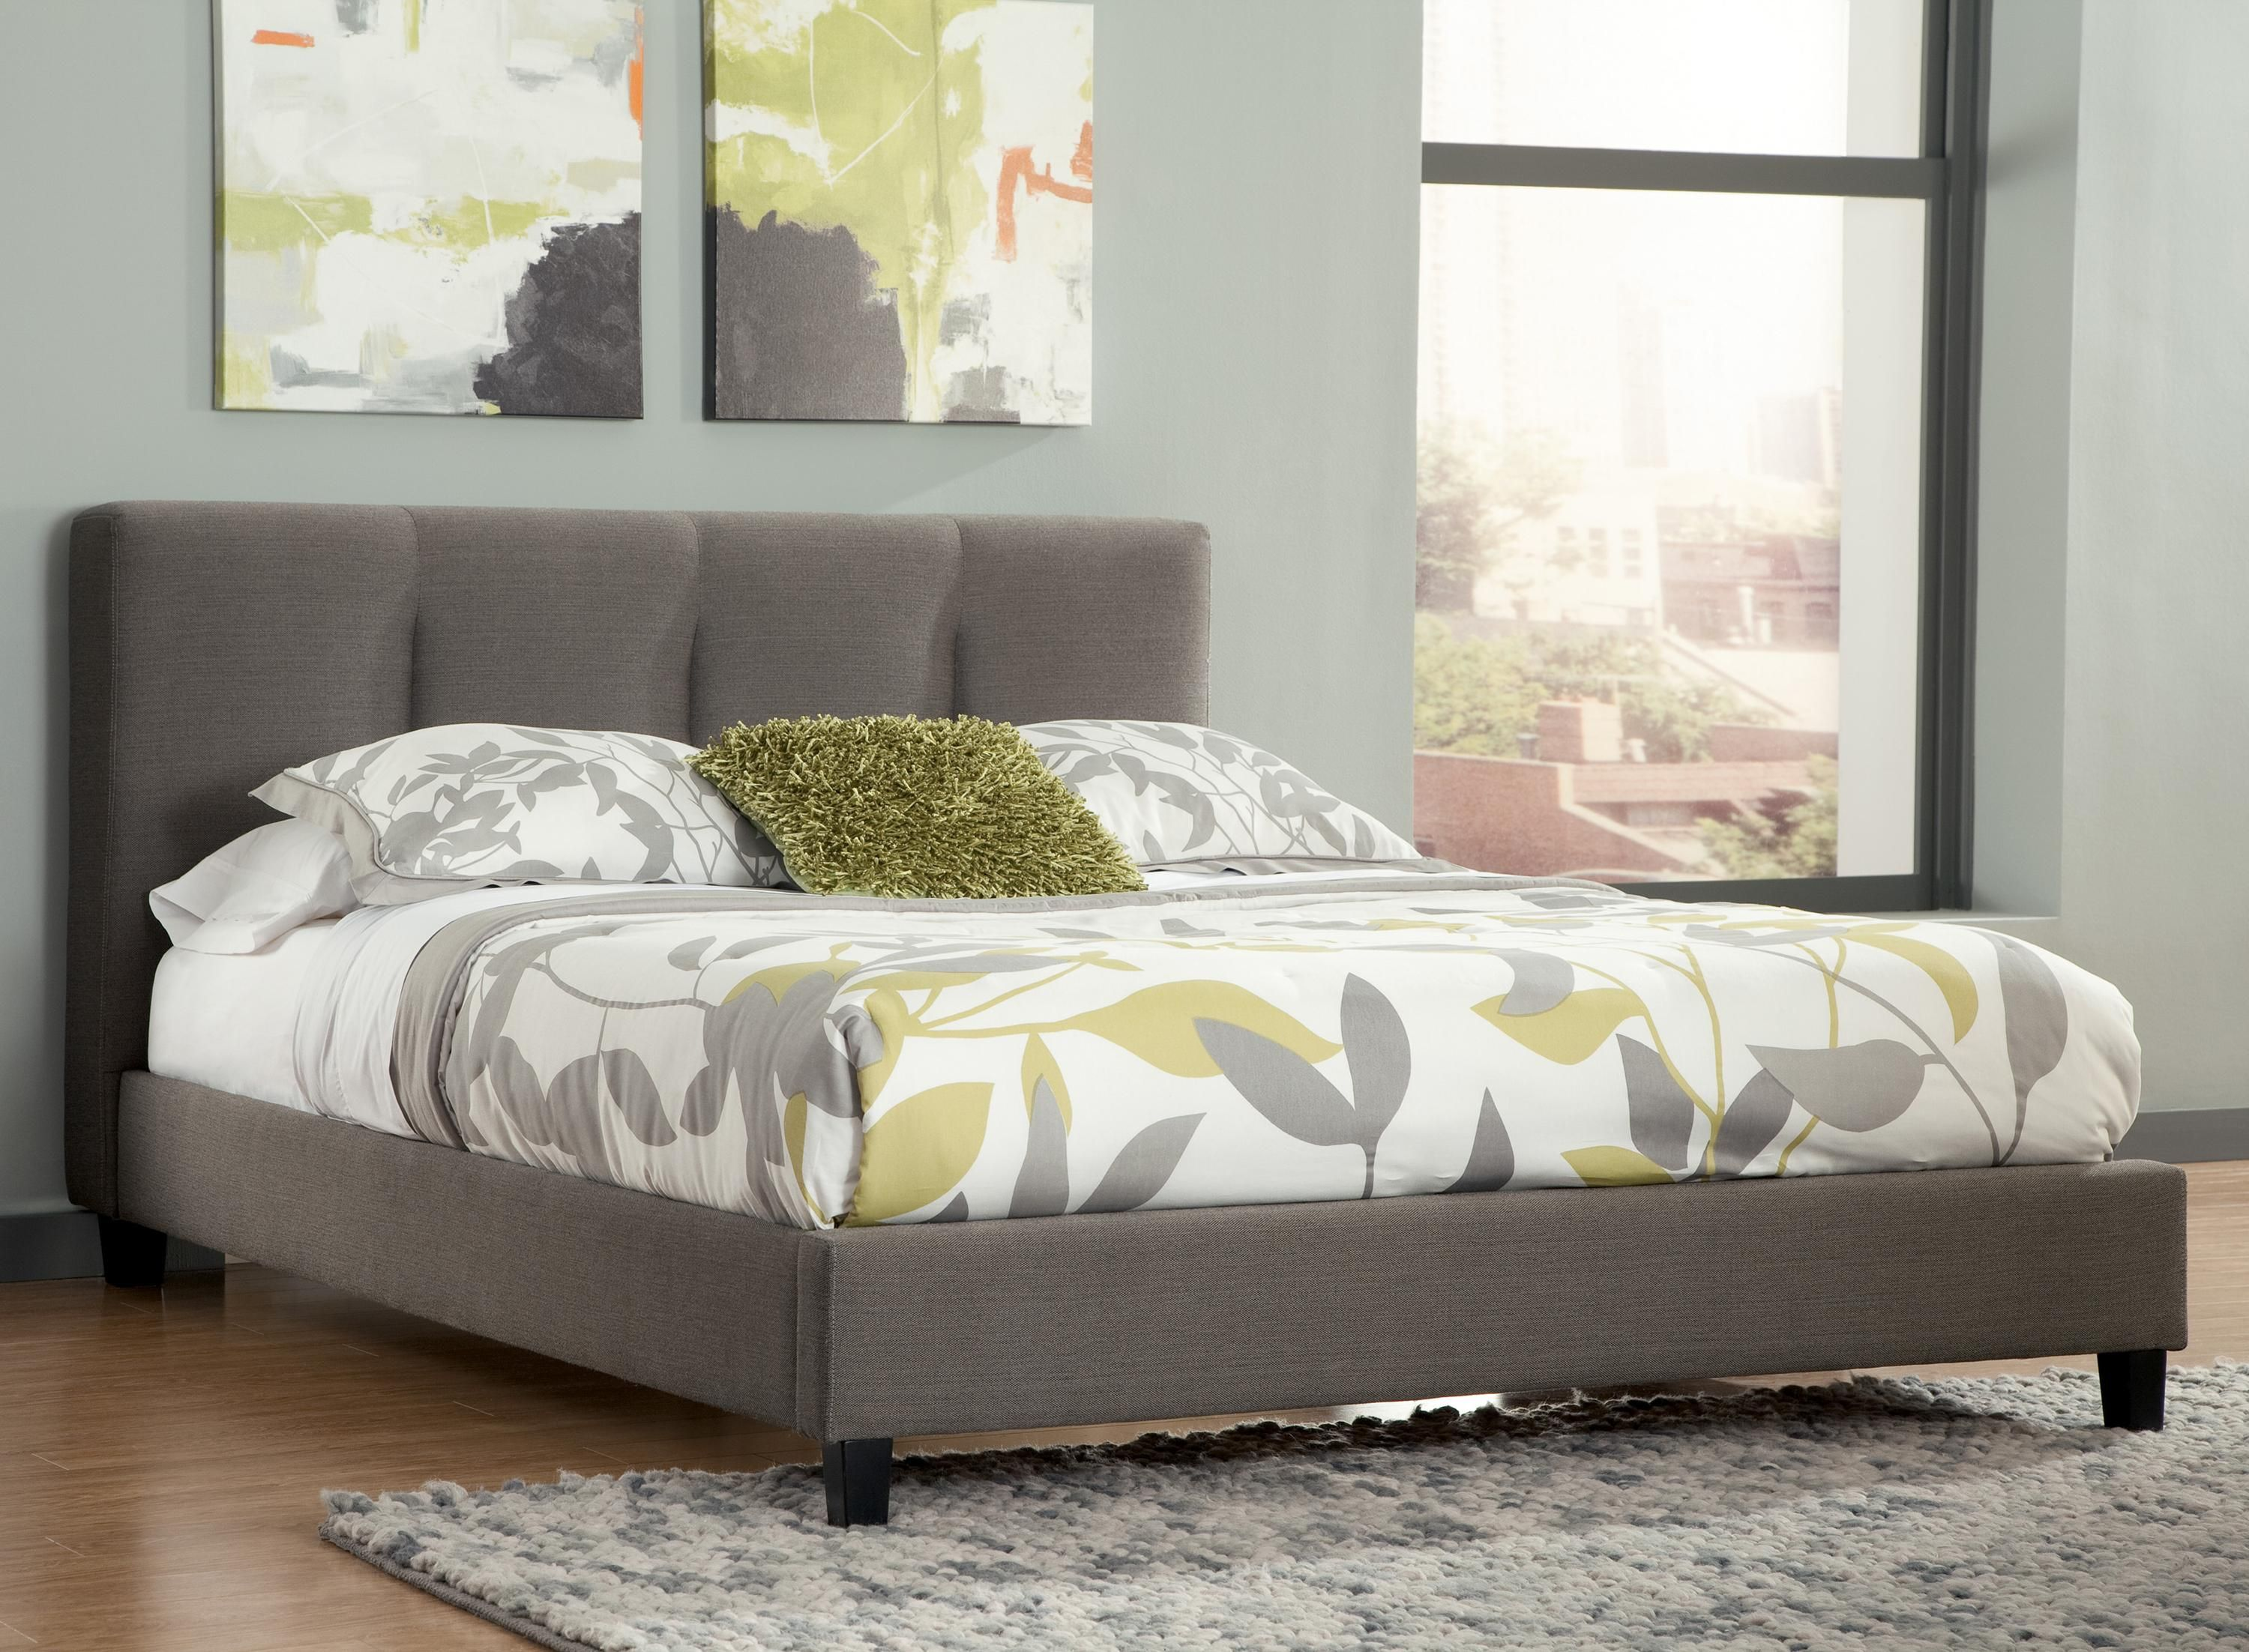 Jerary Queen Upholstered Bed (With images) Upholstered beds